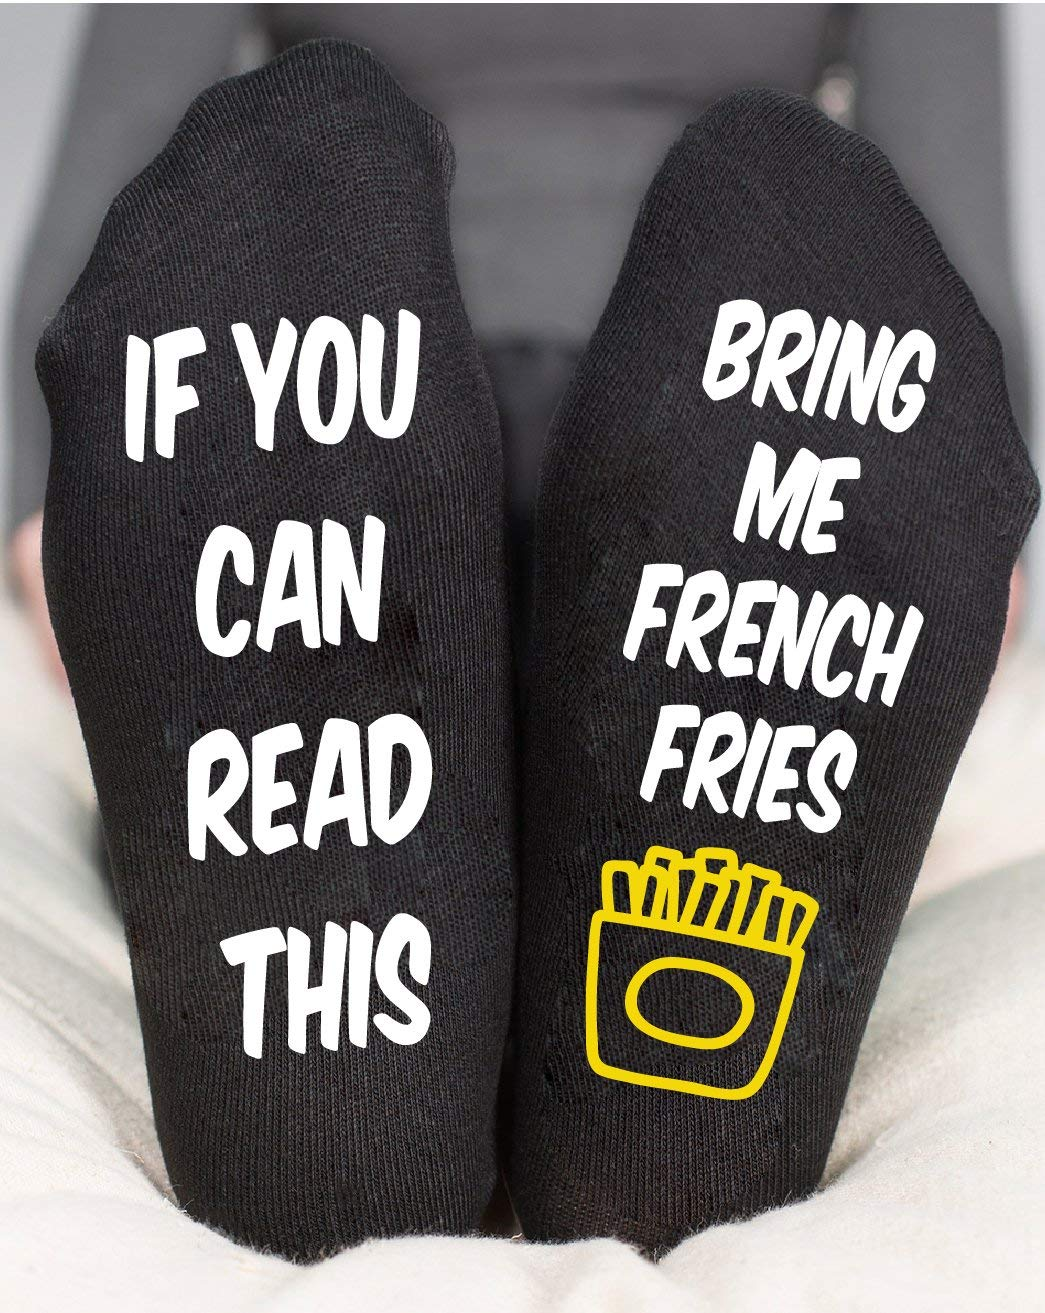 Funny Socks If You Can Read This Bring Me French Fries Gift